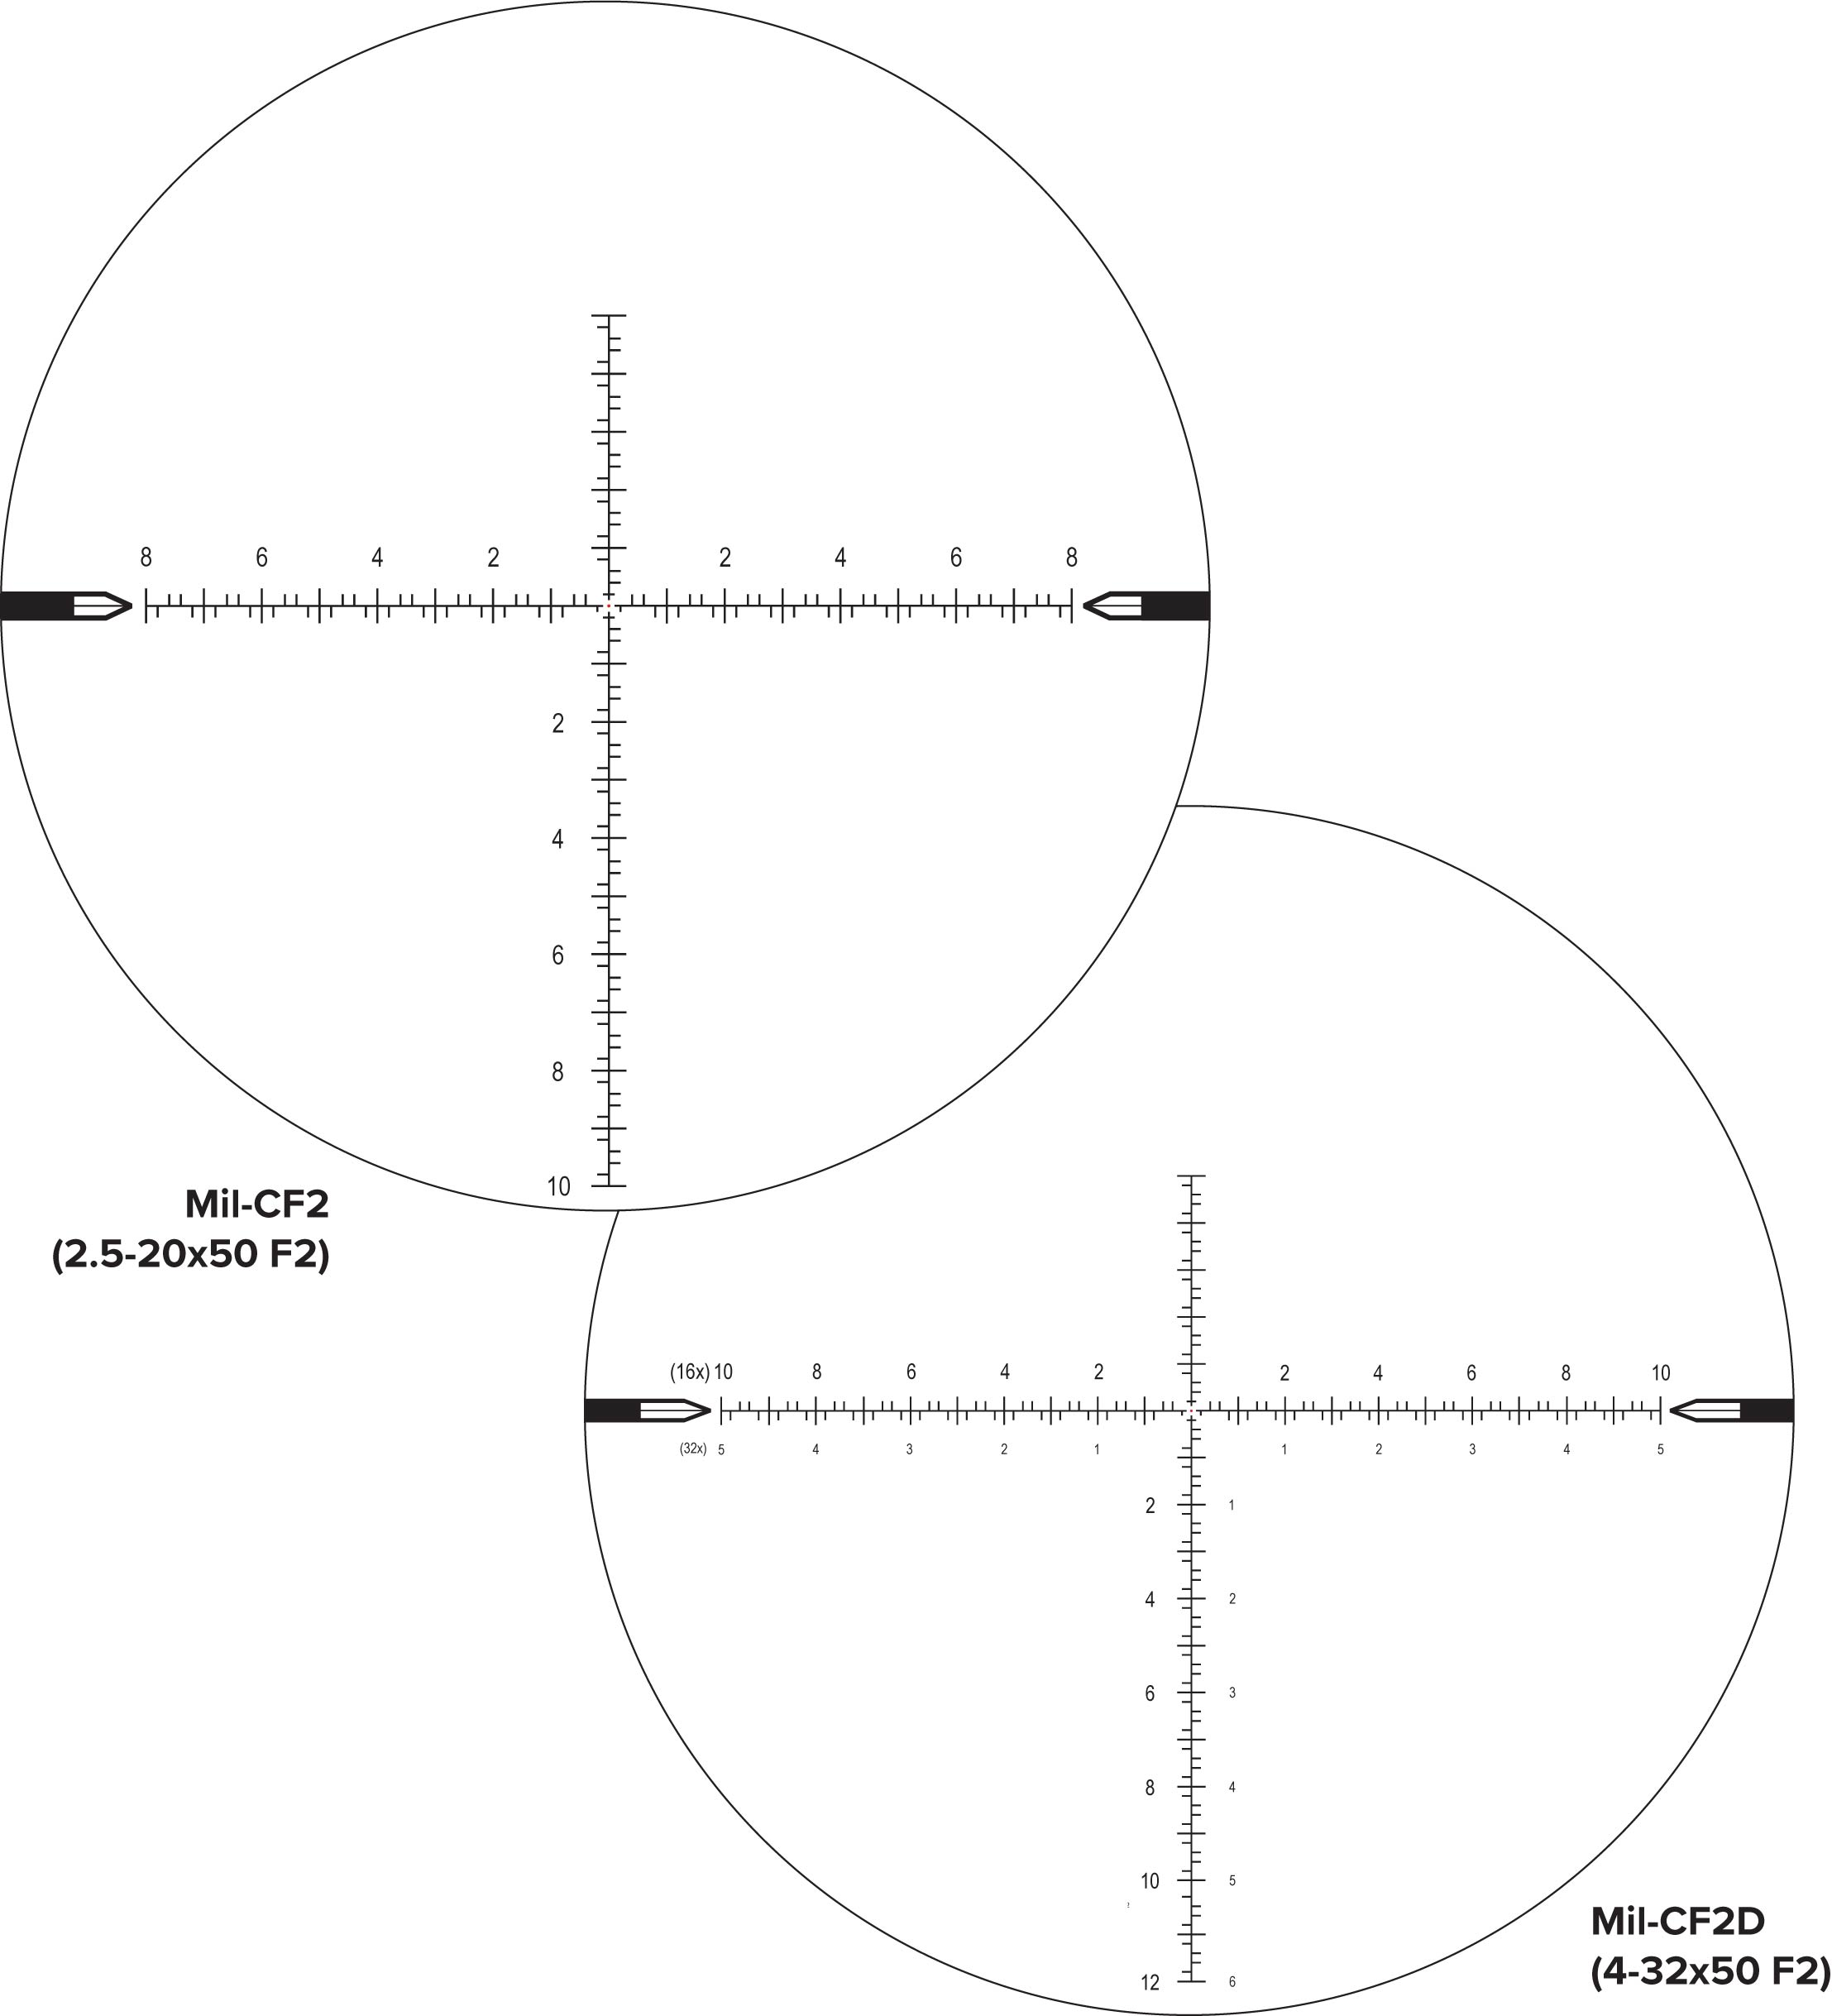 Reticle_Images - NF_MIL-CF2_Reticle